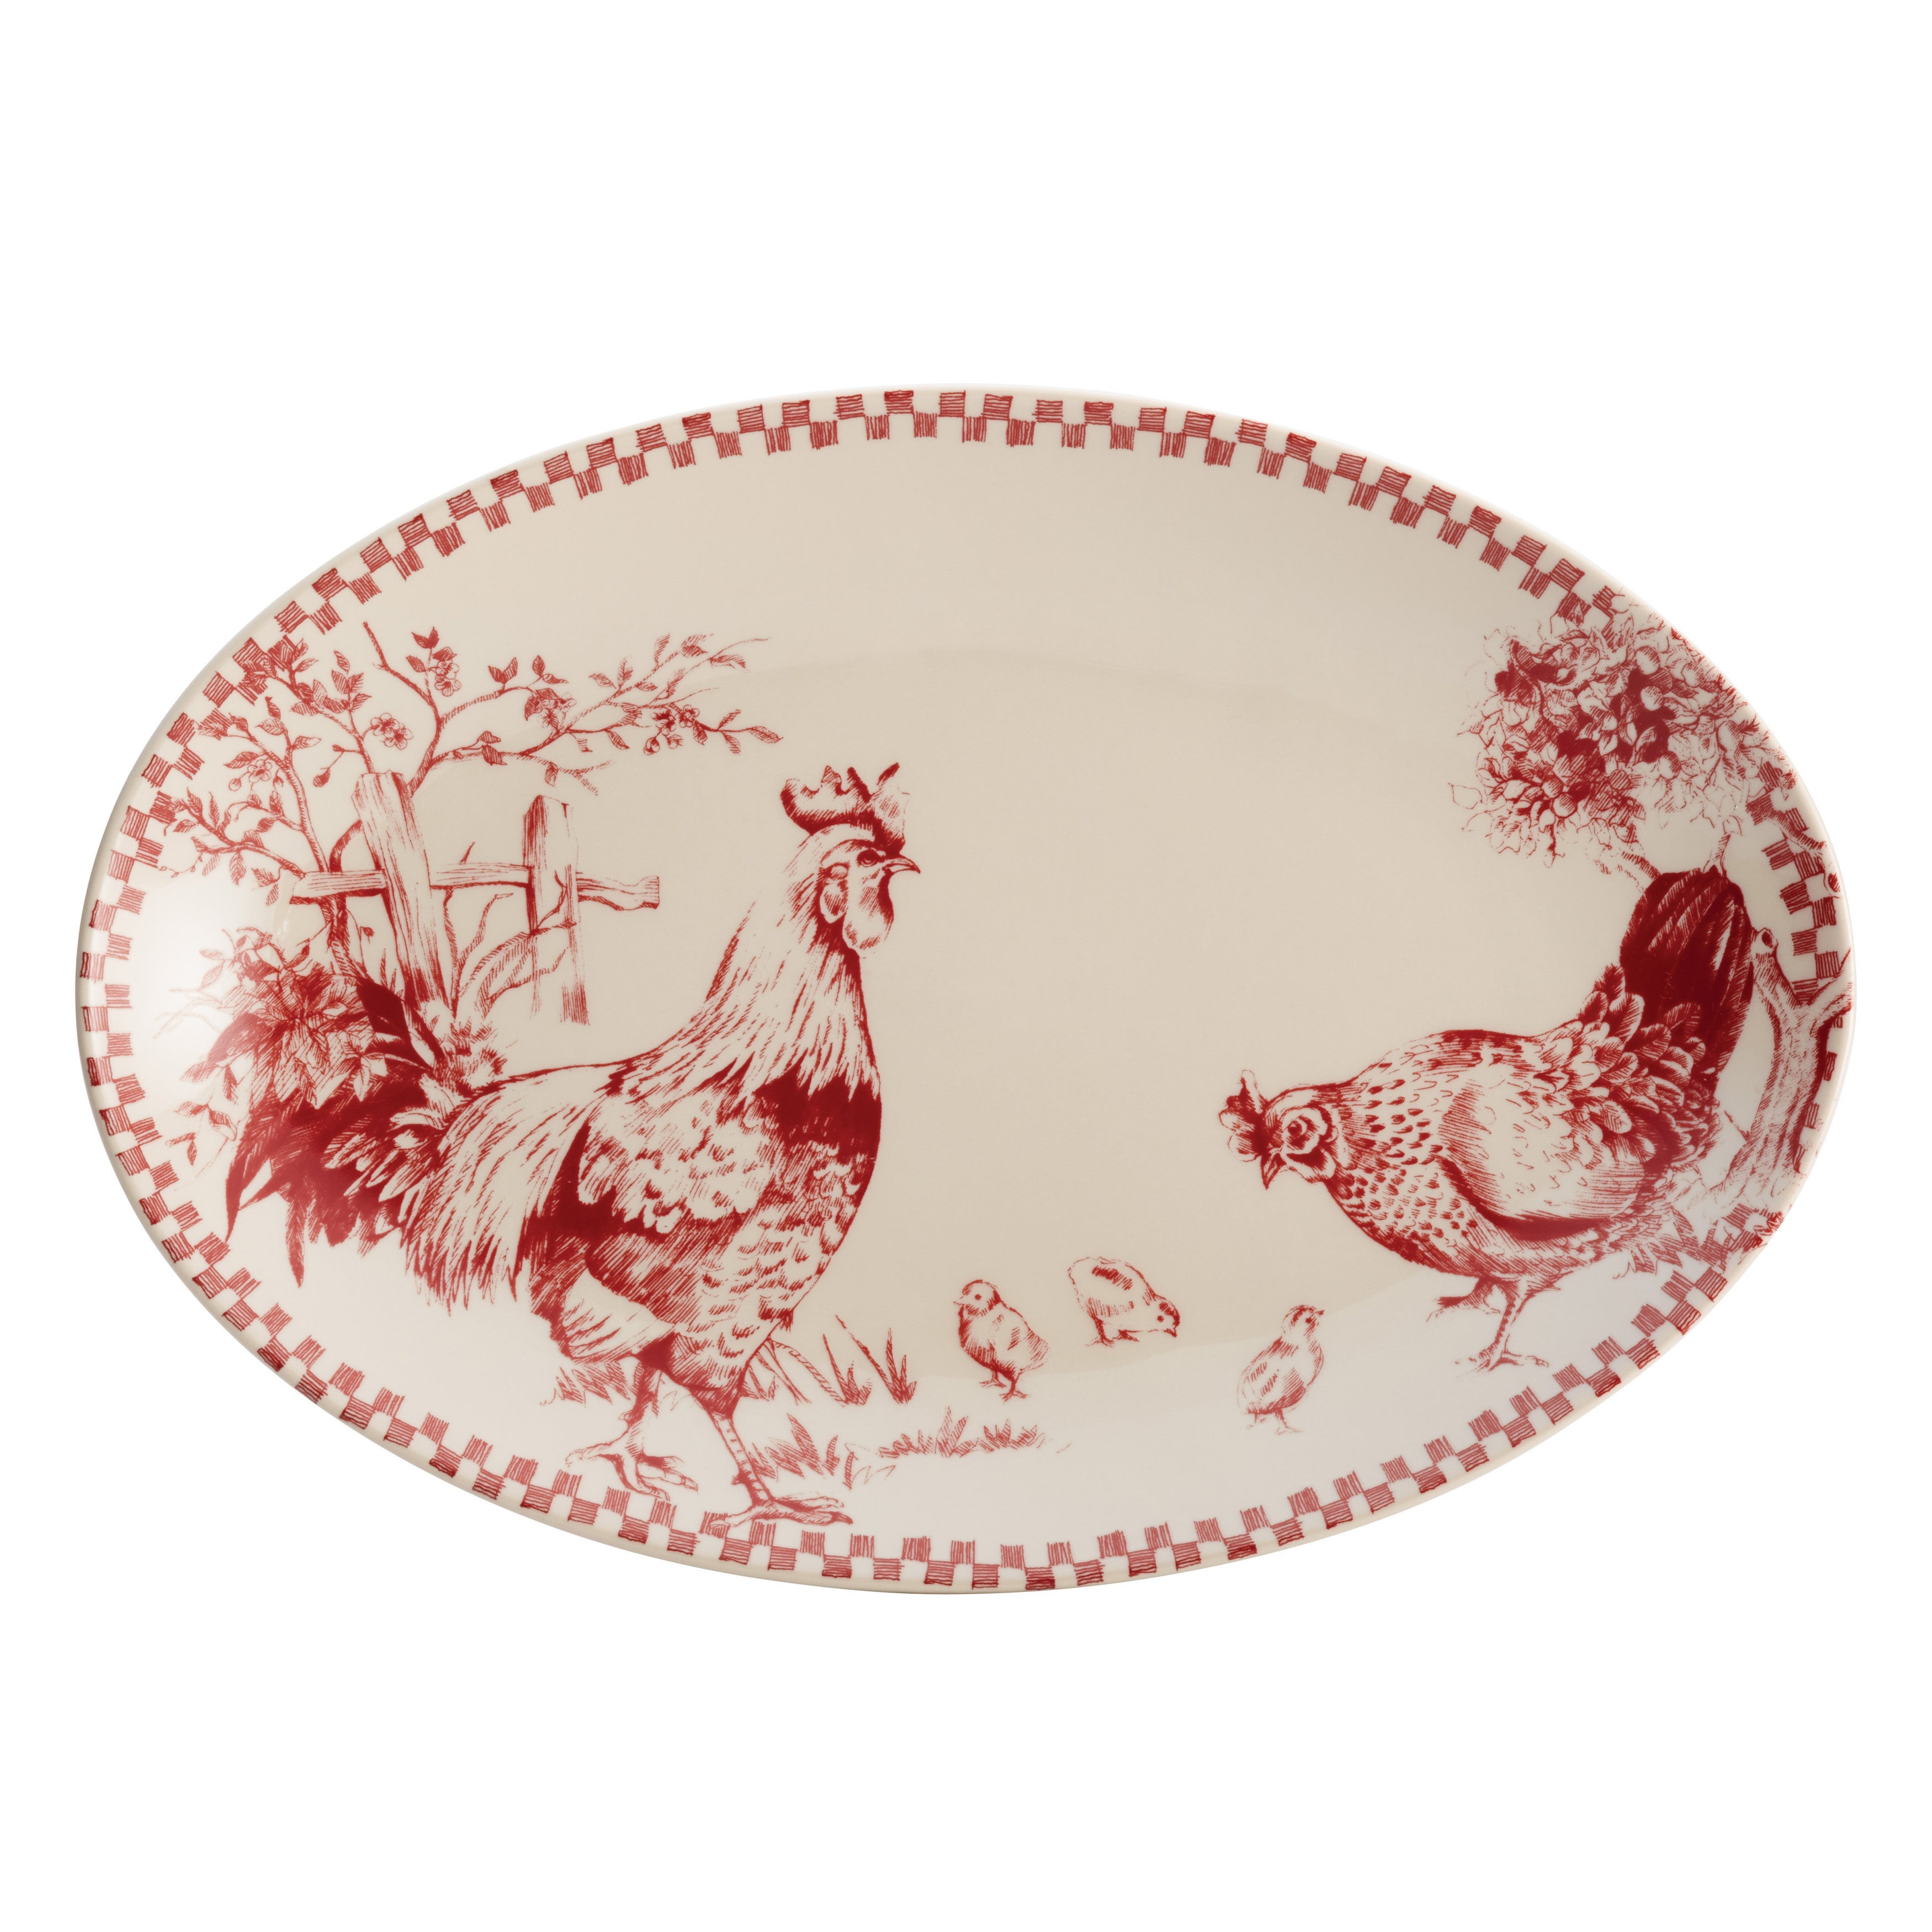 BonJour Dinnerware Chanticleer Country 9-Inch x 13-Inch Stoneware Oval Platter Burgundy Red - Free Shipping On Orders Over $45 - Overstock.com - 17248841  sc 1 st  Overstock & BonJour Dinnerware Chanticleer Country 9-Inch x 13-Inch Stoneware ...